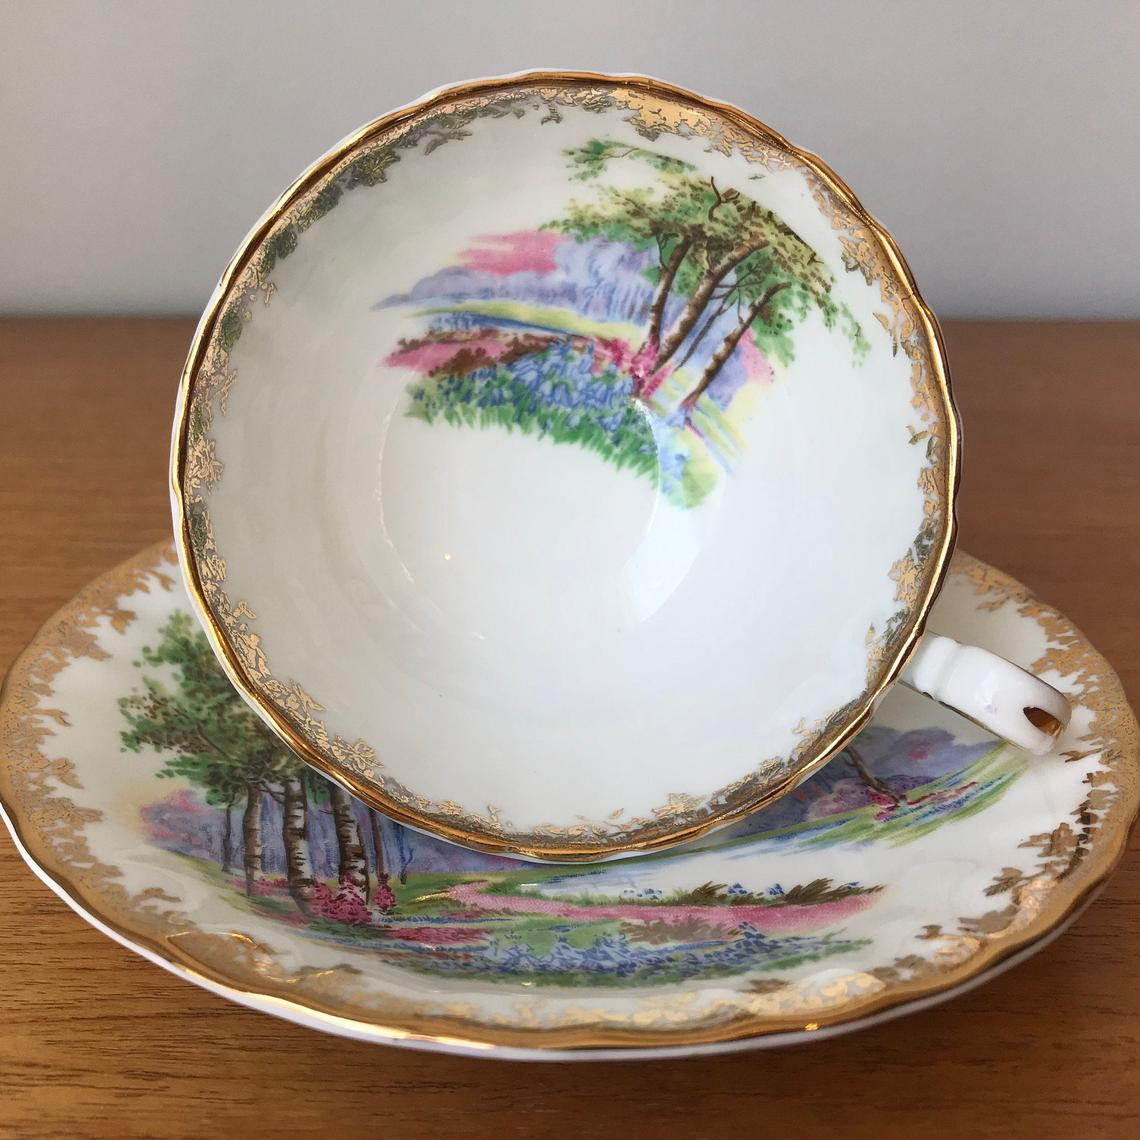 """Aynsley """"Bluebell Time"""" Tea Cup and Saucer, Vintage Bone China Teacup and Saucer, Scenic Trees Flowers Oban Shape"""